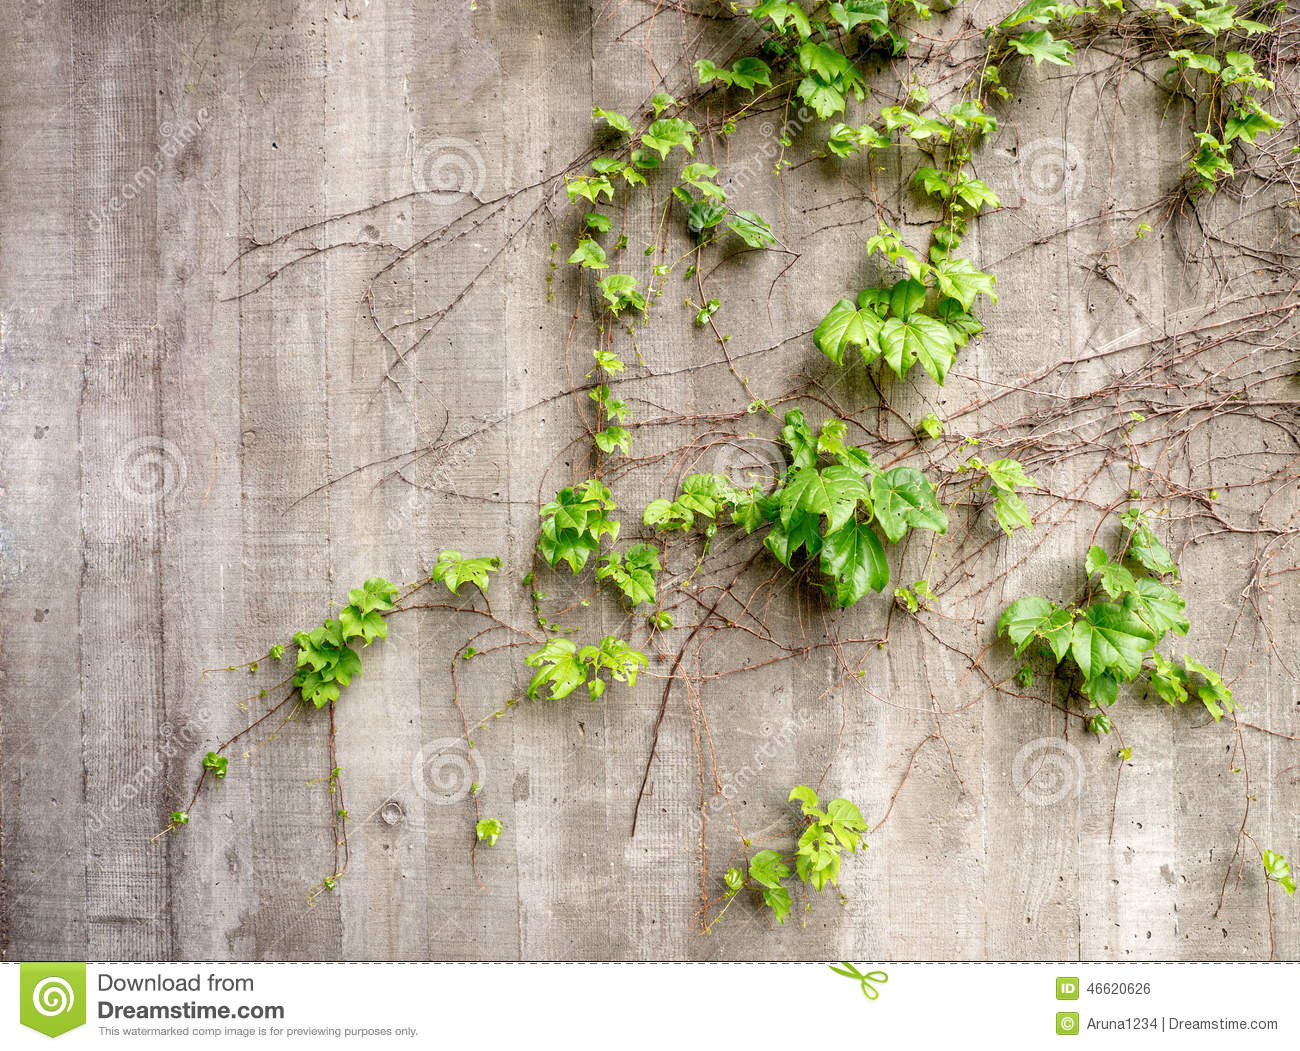 Lush Green Vines Growing On Side Of Weathered Old Concrete